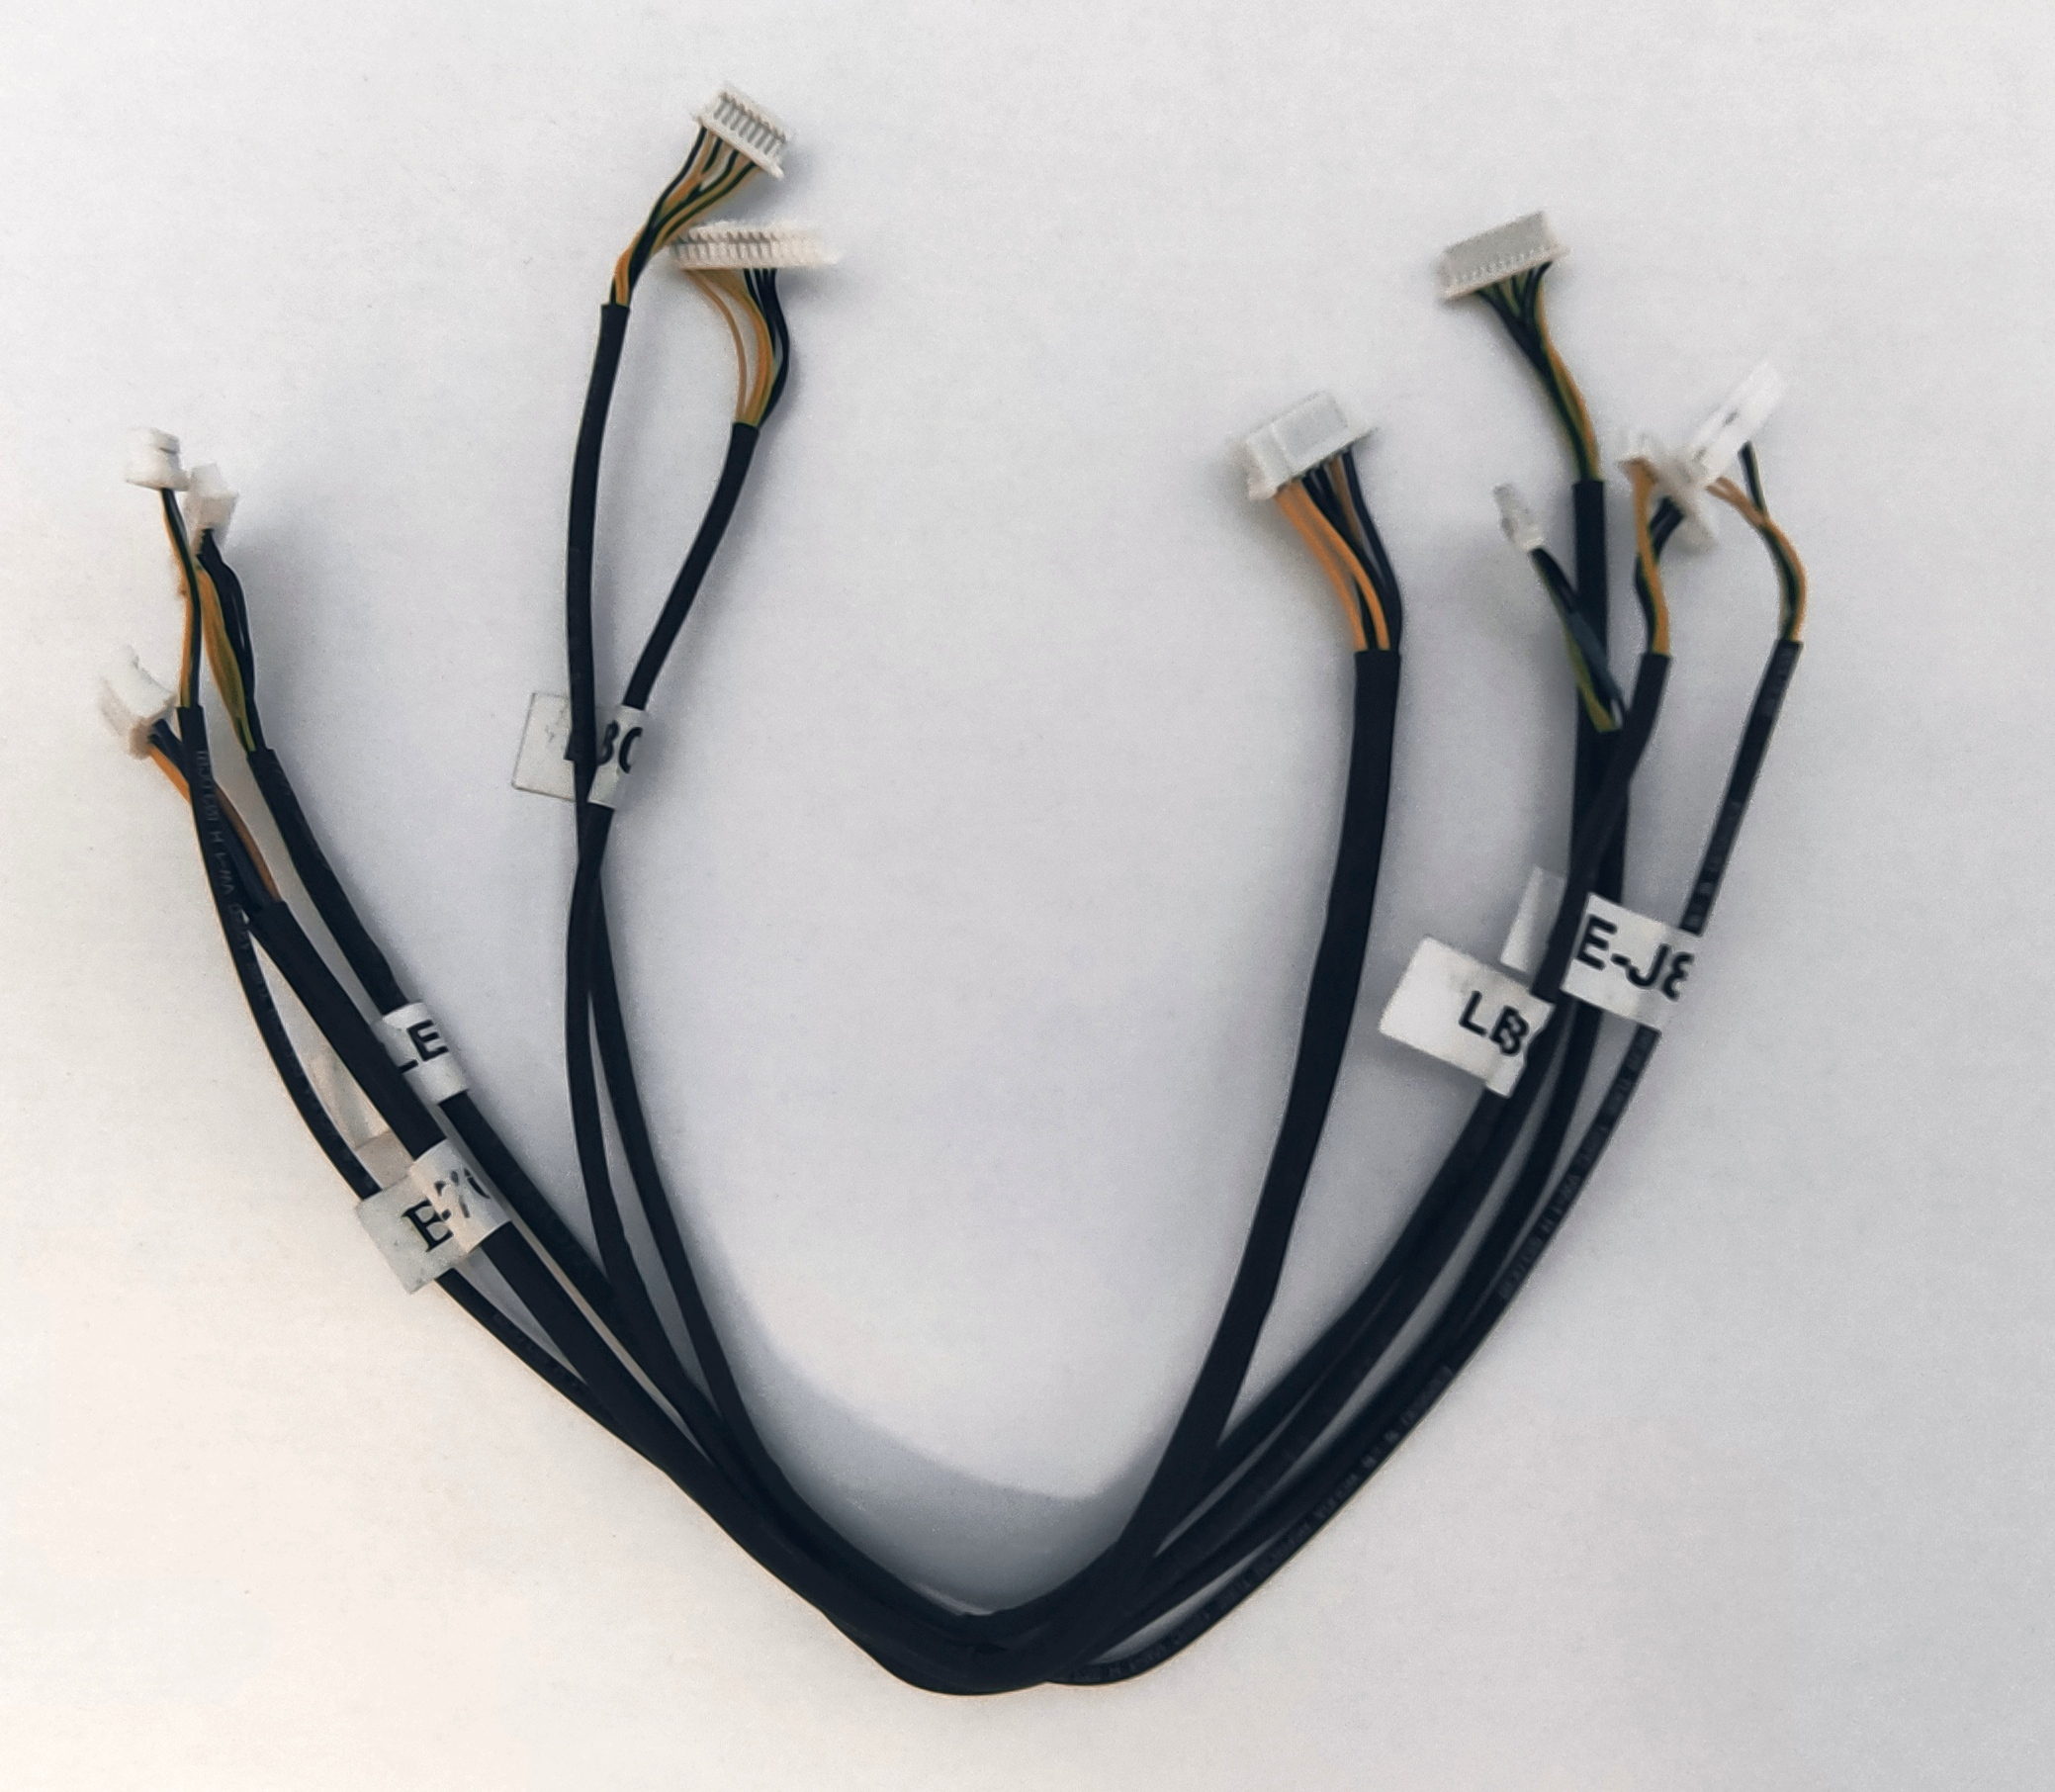 BT-cable-70680